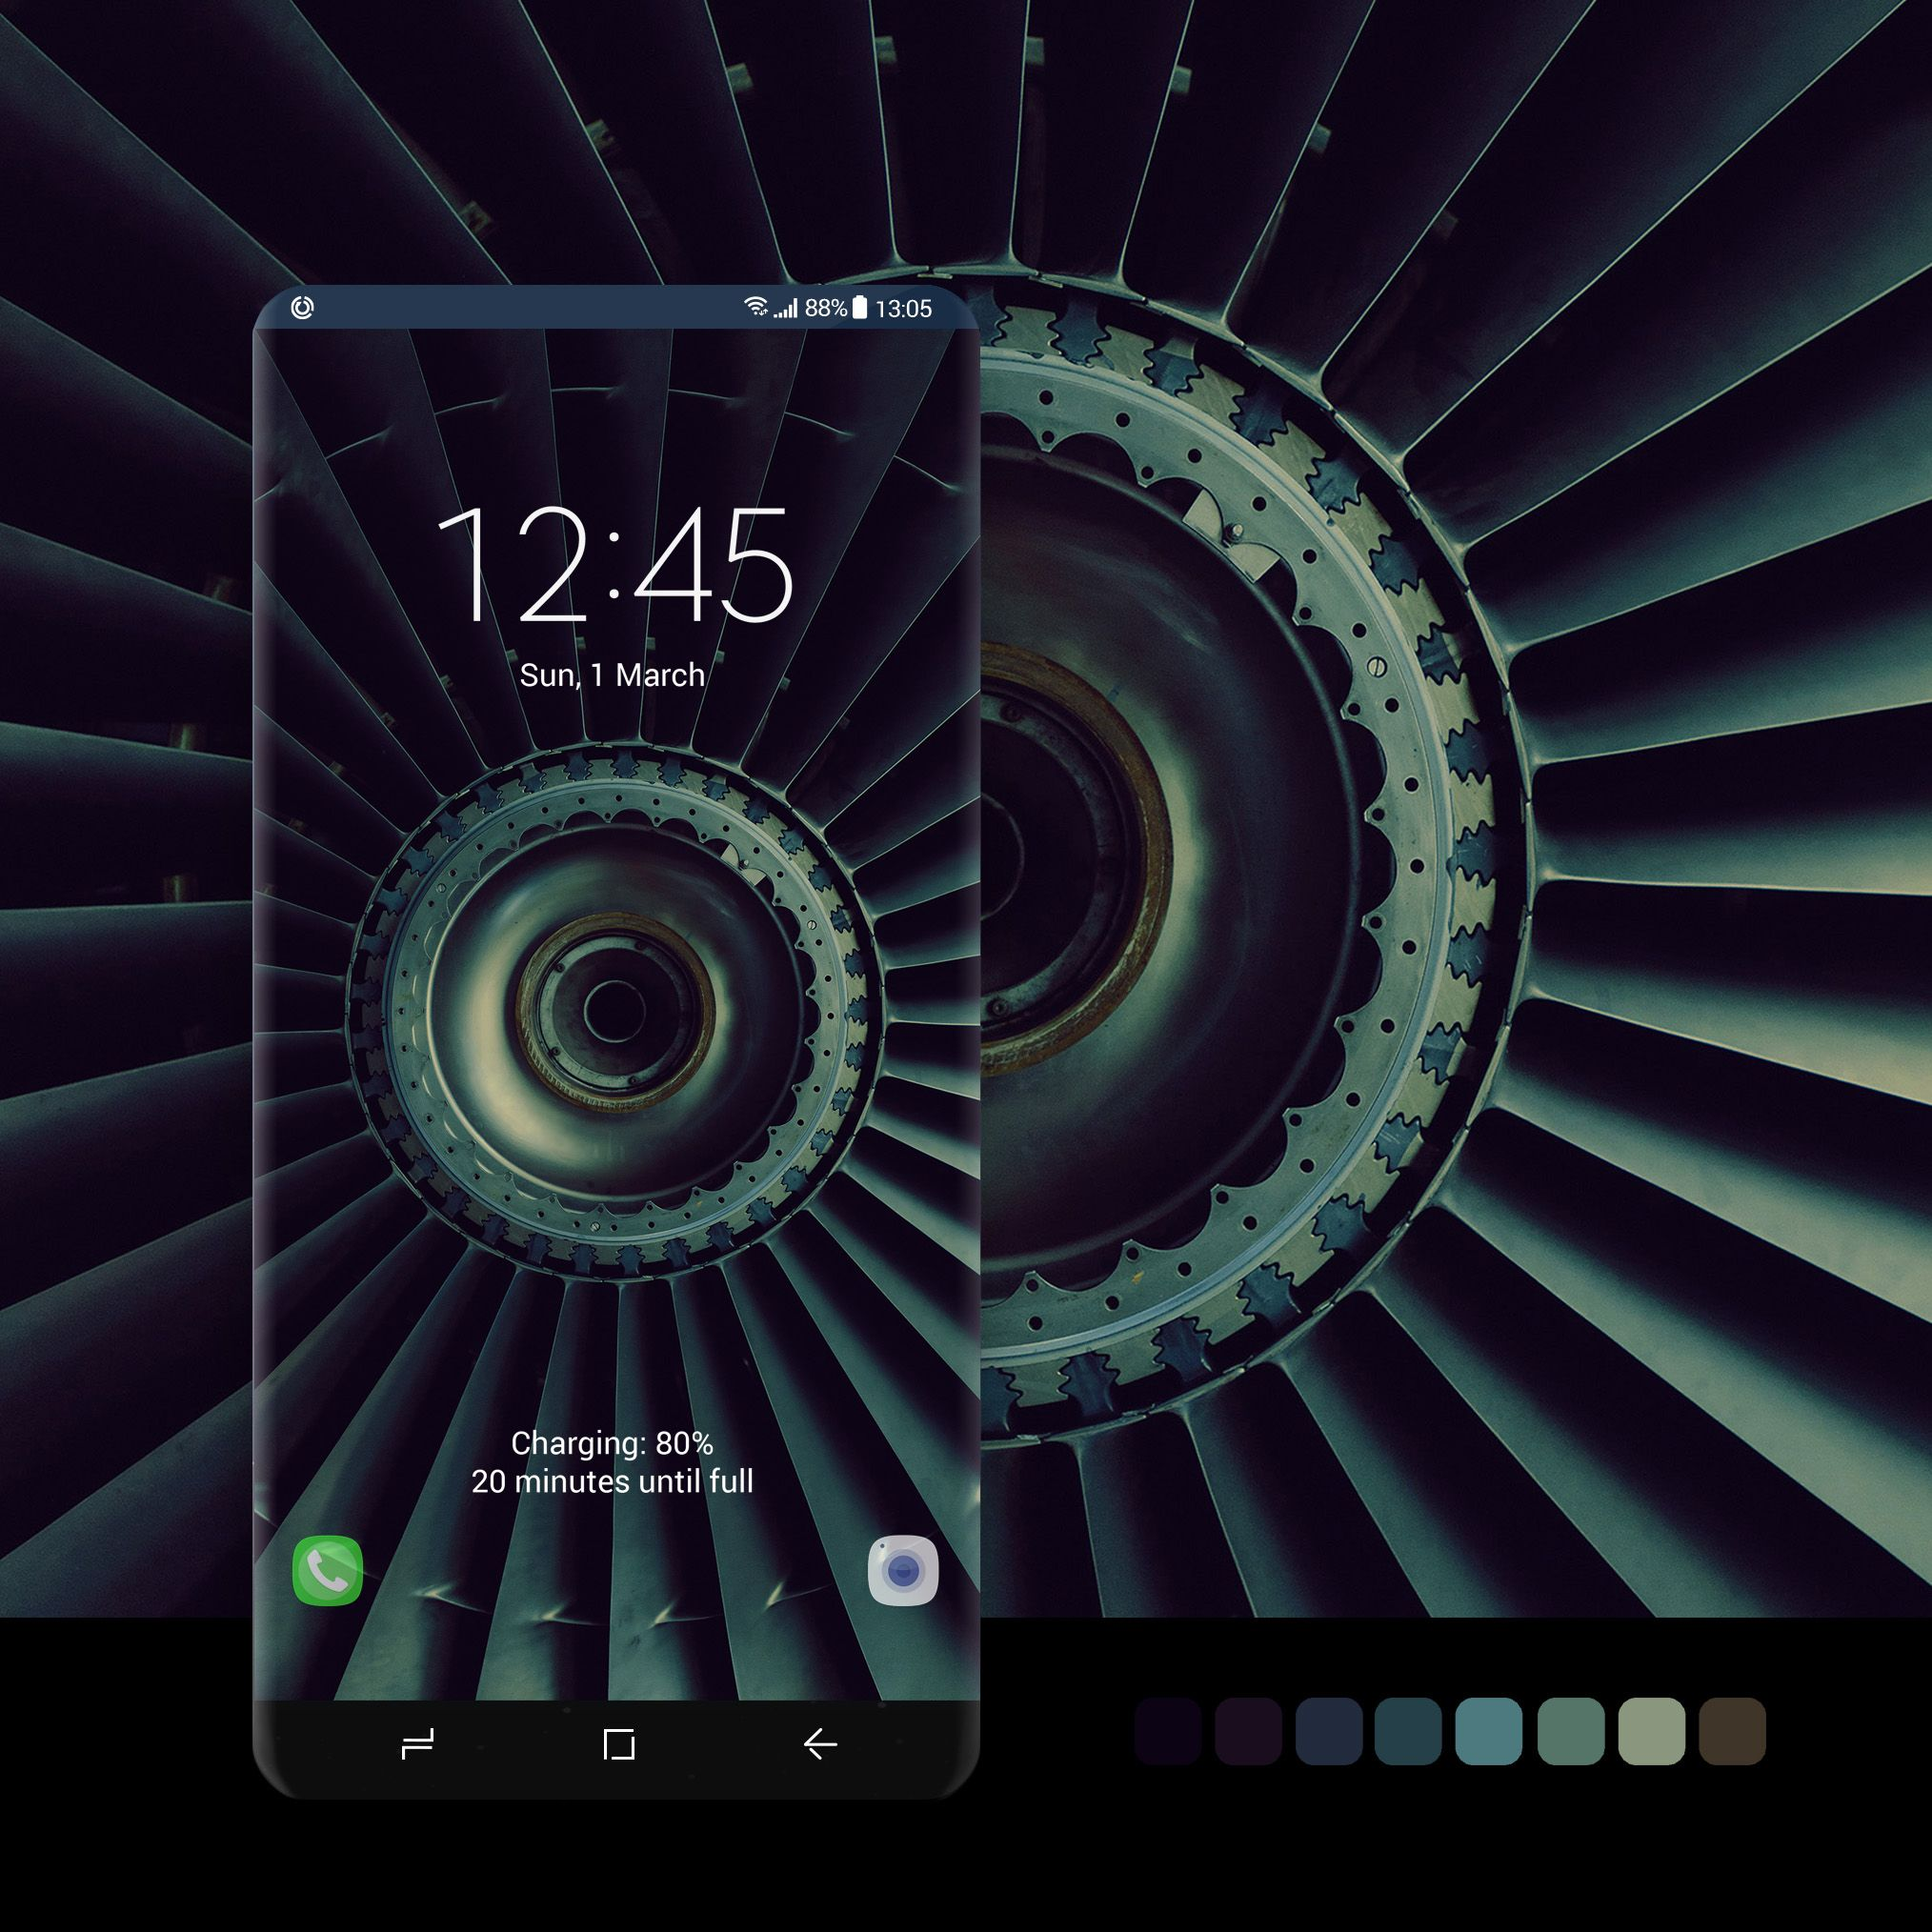 Unduh 960 Koleksi Wallpaper Android Engineering Gratis Terbaru